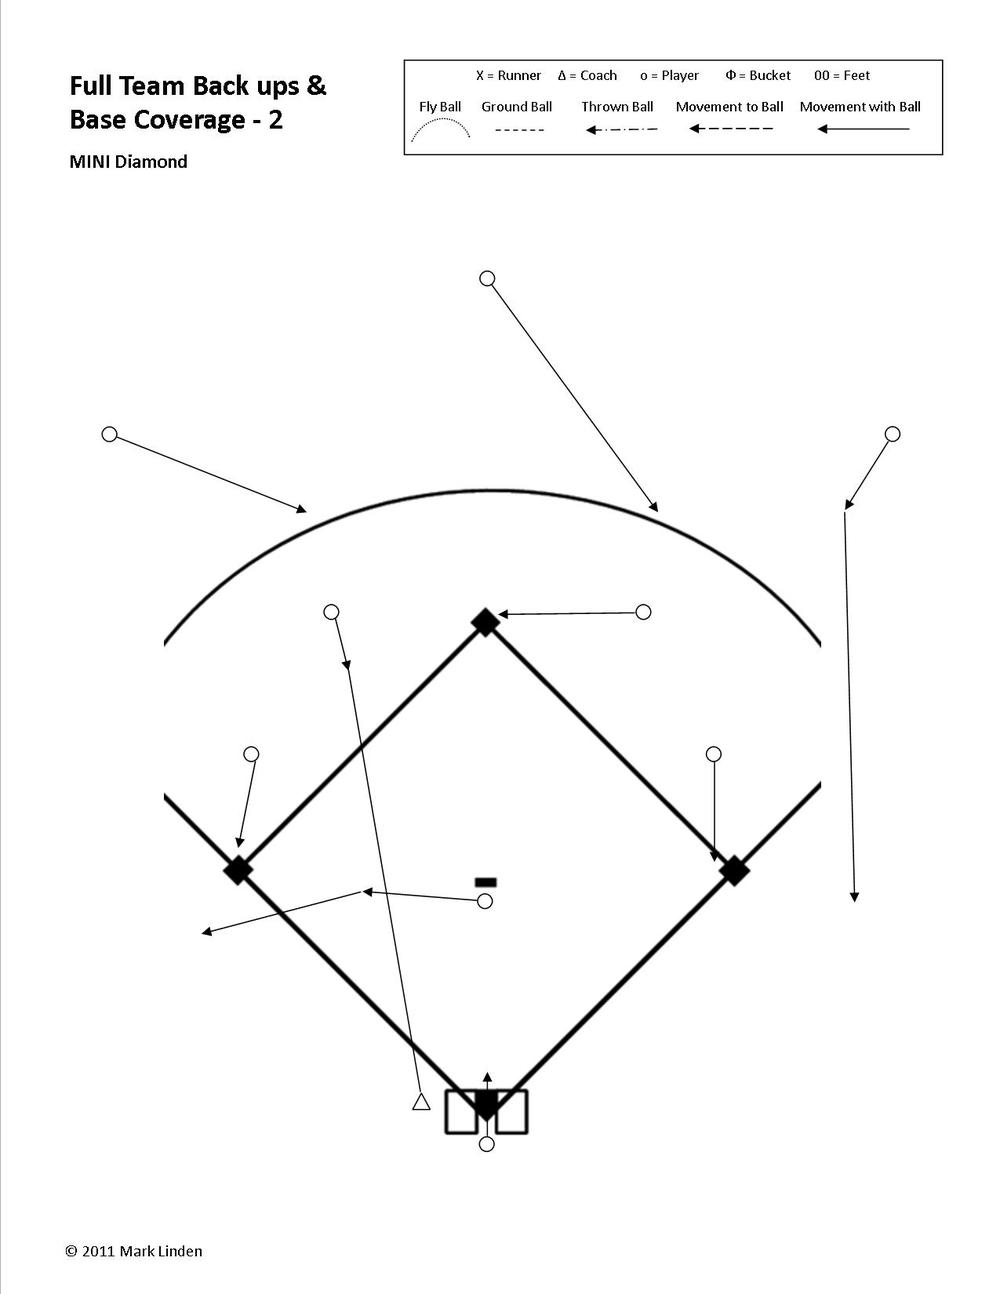 "In this example we have a ball hit to the shortstop: -->  The rule for the other three infielders is to cover a base.      -->  The rule for the CF and RF is that because they are not playing the ball they are backing up a base.         -->  The rule for the Pitcher is ""Always move towards the ball"".  In this case the Pitcher does not field the ball so they continue running in a straight line towards third base.  They see the base is covered, so go to their next responsibility of backing-up the base.  -->  The rule for the LEFT FIELDER, because the ball is hit to an infielder in front of them, is to go for the ball.  Not until they see the ball is caught by the fielder in front of them does their responsibility change to moving to back up a throw.  In this case getting to the initial backing-up position is not a concern because the Pitcher is backing up third base. However, the Left Fielder does visually follow the ball and prepares for the possibility that the ball may be moved around the infield and they may be needed, later in the play, to back up a throw to second or third base."